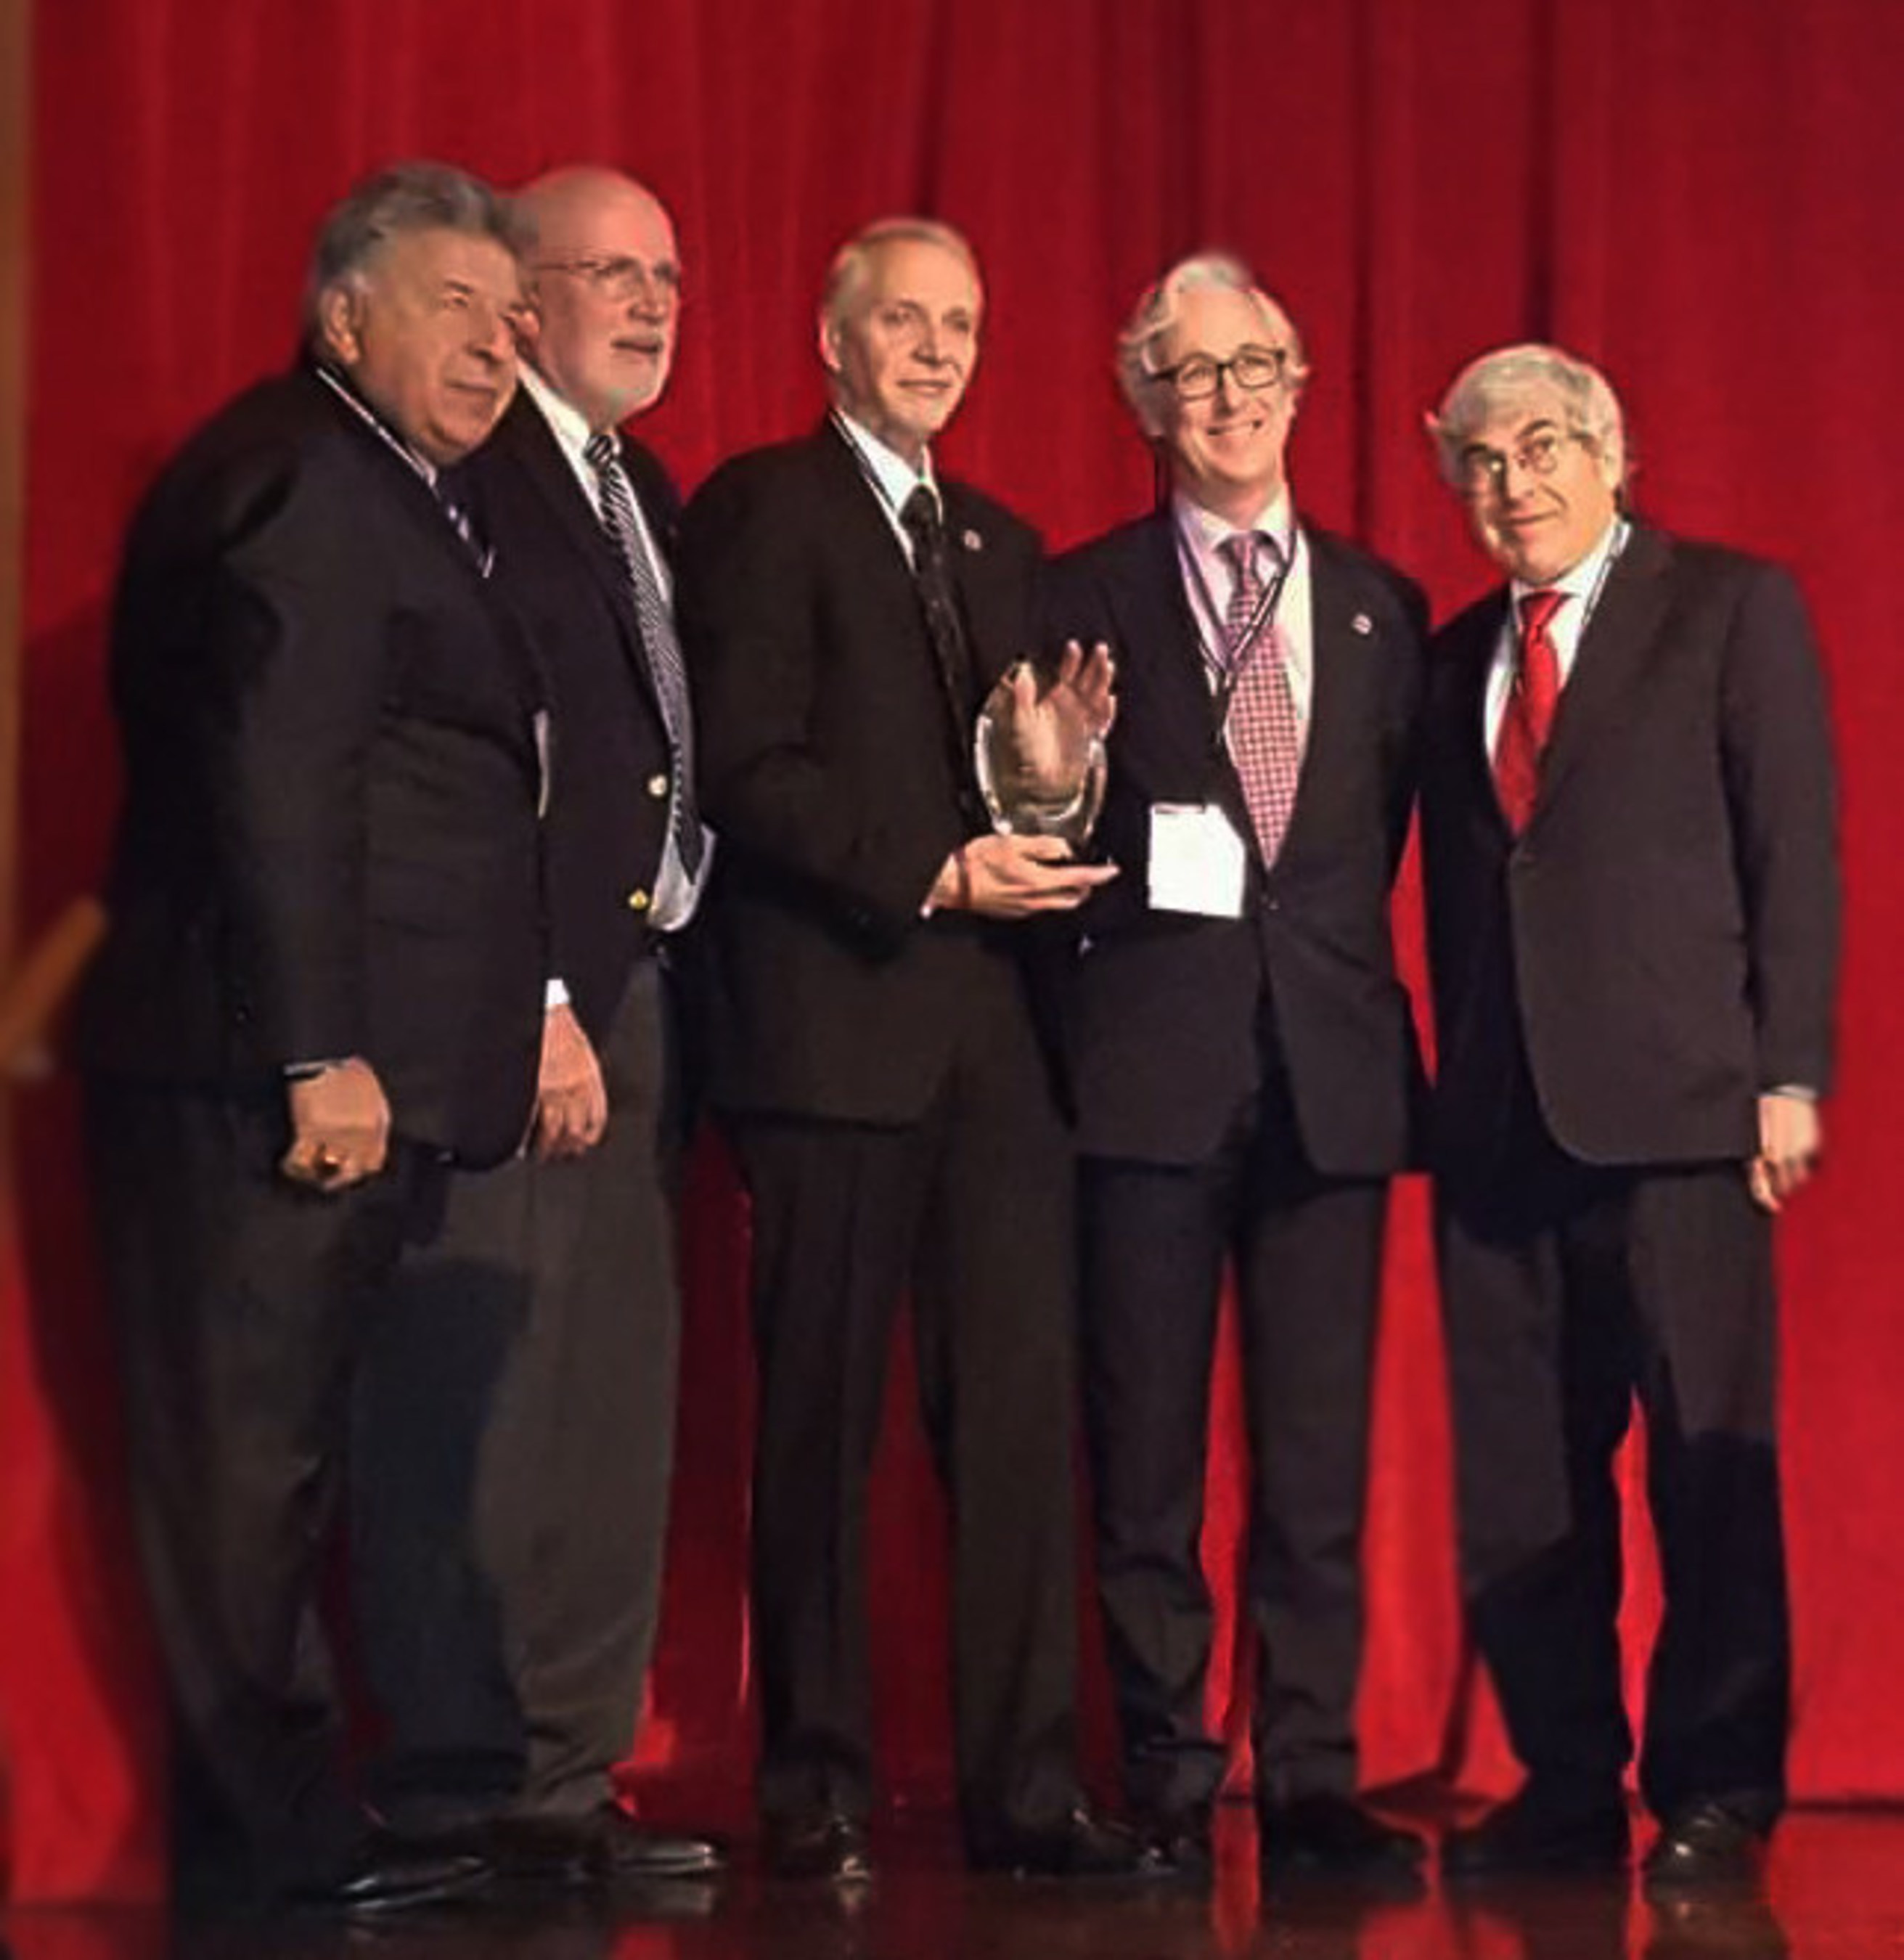 The Oral Cancer Foundation's Founder, Brian R. Hill, honored by the Global Oral Cancer Forum